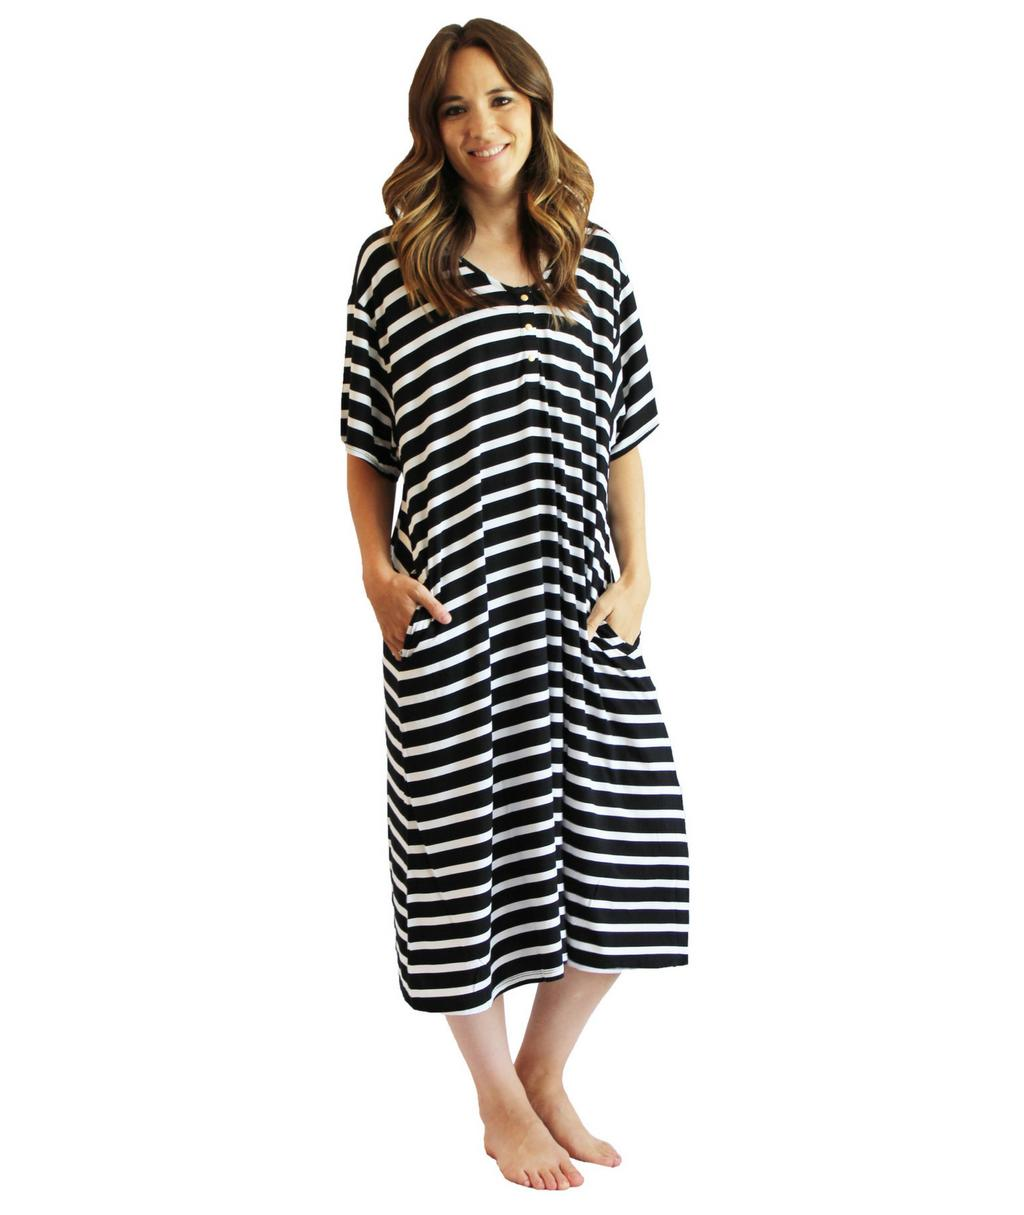 Undercover House 24-7 Nightgown NEW!